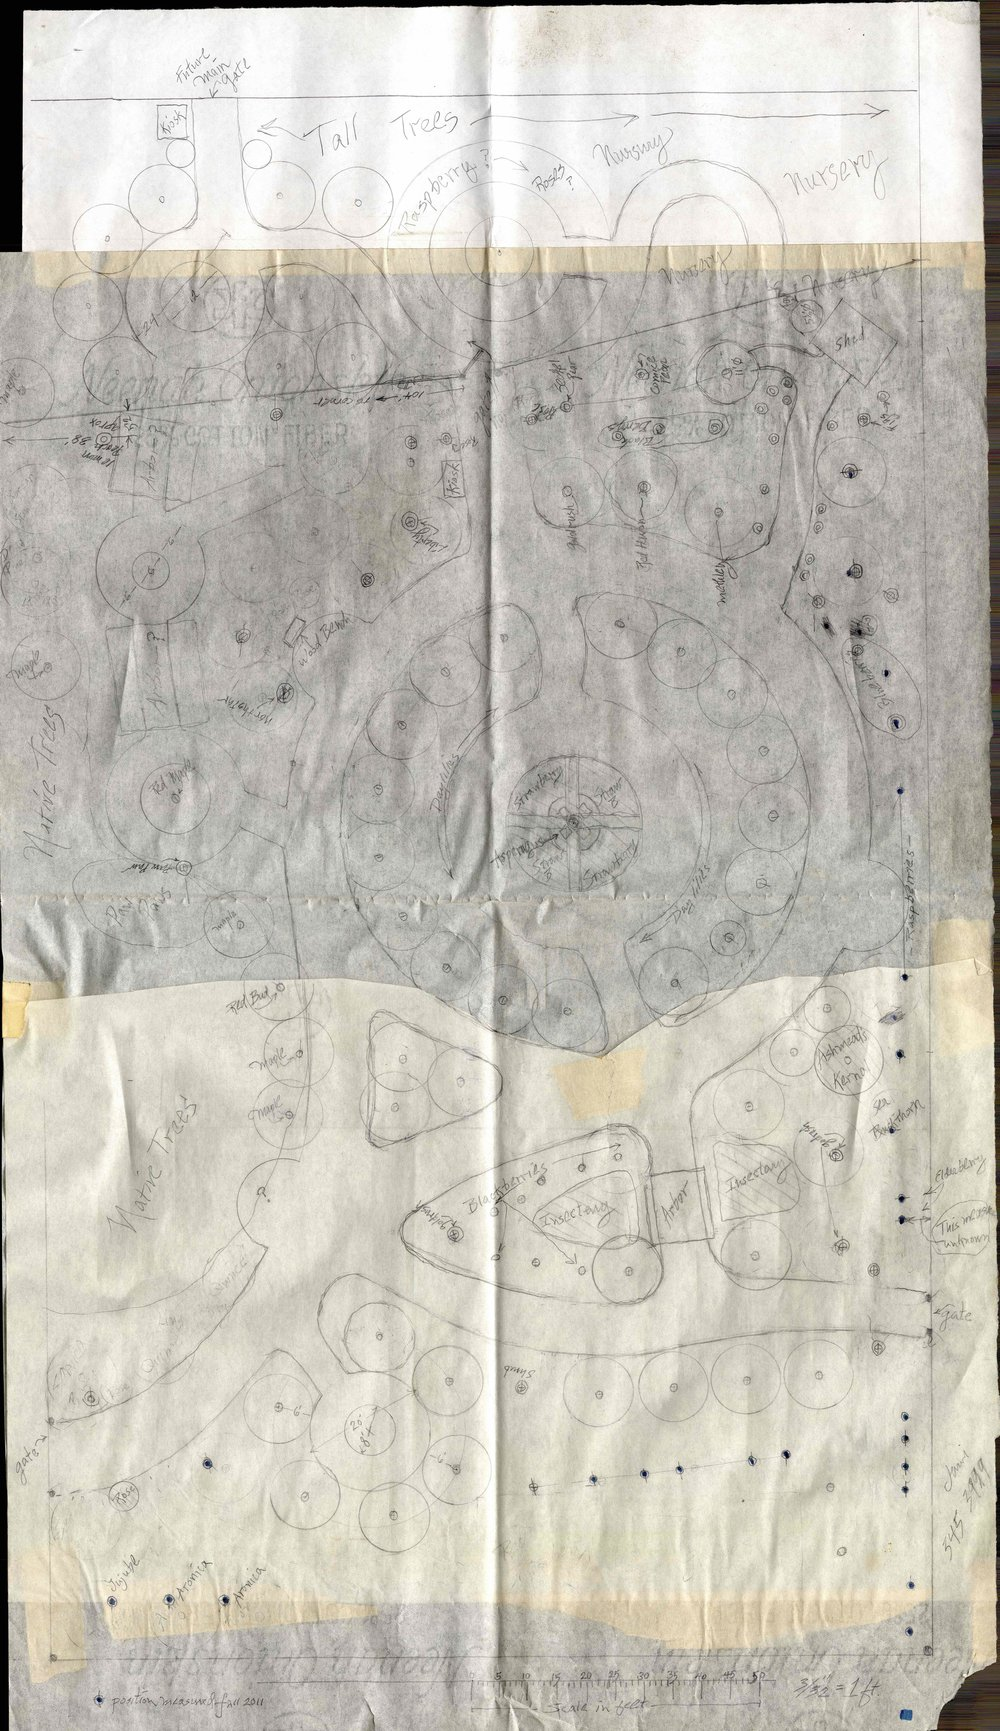 Though a bit difficult to see, this map on tracing paper appears to be one of the earliest takes at organizing the site, drawn by Jack, a local artist who joined the project at one of the first callout meetings. Jack drafted the design and anticipated more of a back-and-forth as the community came to a shared vision. He was surprised when the design was largely taken up and conversation moved to what was attainable in a first phase and what cultivars would work best.  From its Jack's draft, the site centered on building space for community rather than prioritizing maximum production of fruit. The layout flows, to move individuals throughout the space, but also features multiple stopping points—circles scattered through are designed to hold groups of varying sizes for meetings, picnics, or quiet reflection.  The northern edge of the orchard is at the top of the image; this is consistent throughout.